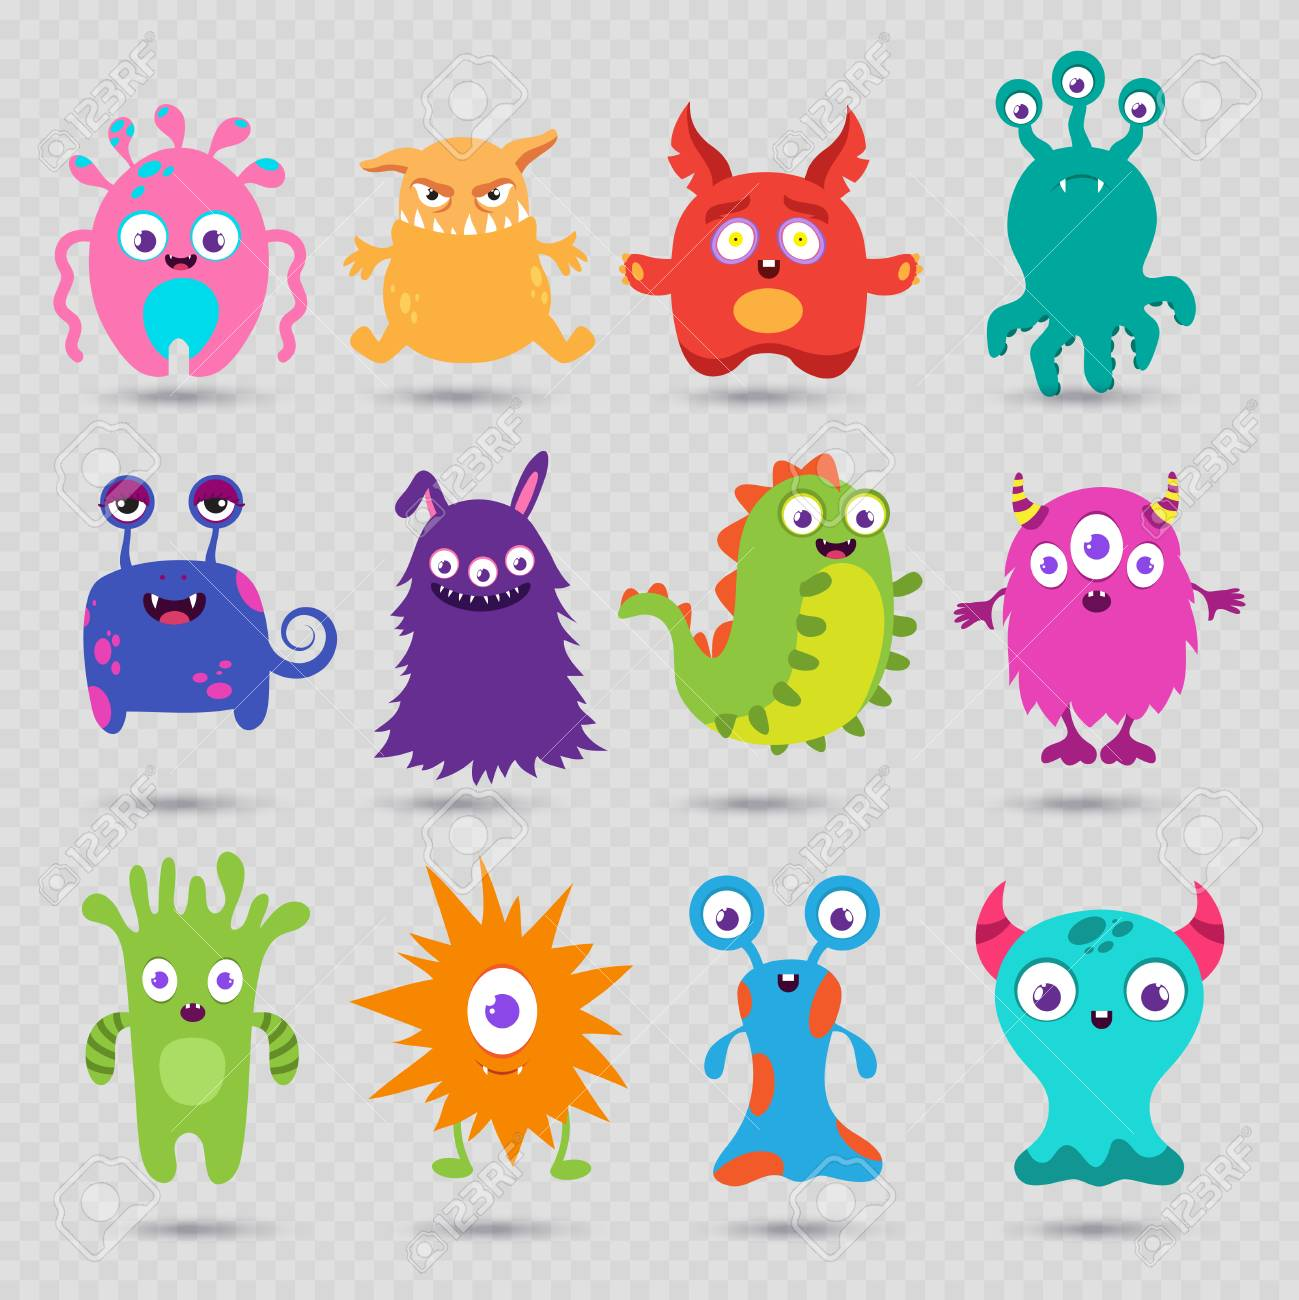 Cookie Monster Clipart Well Known - Baby Cookie Monster Clipart - Png  Download - Full Size Clipart (#4006155) - PinClipart